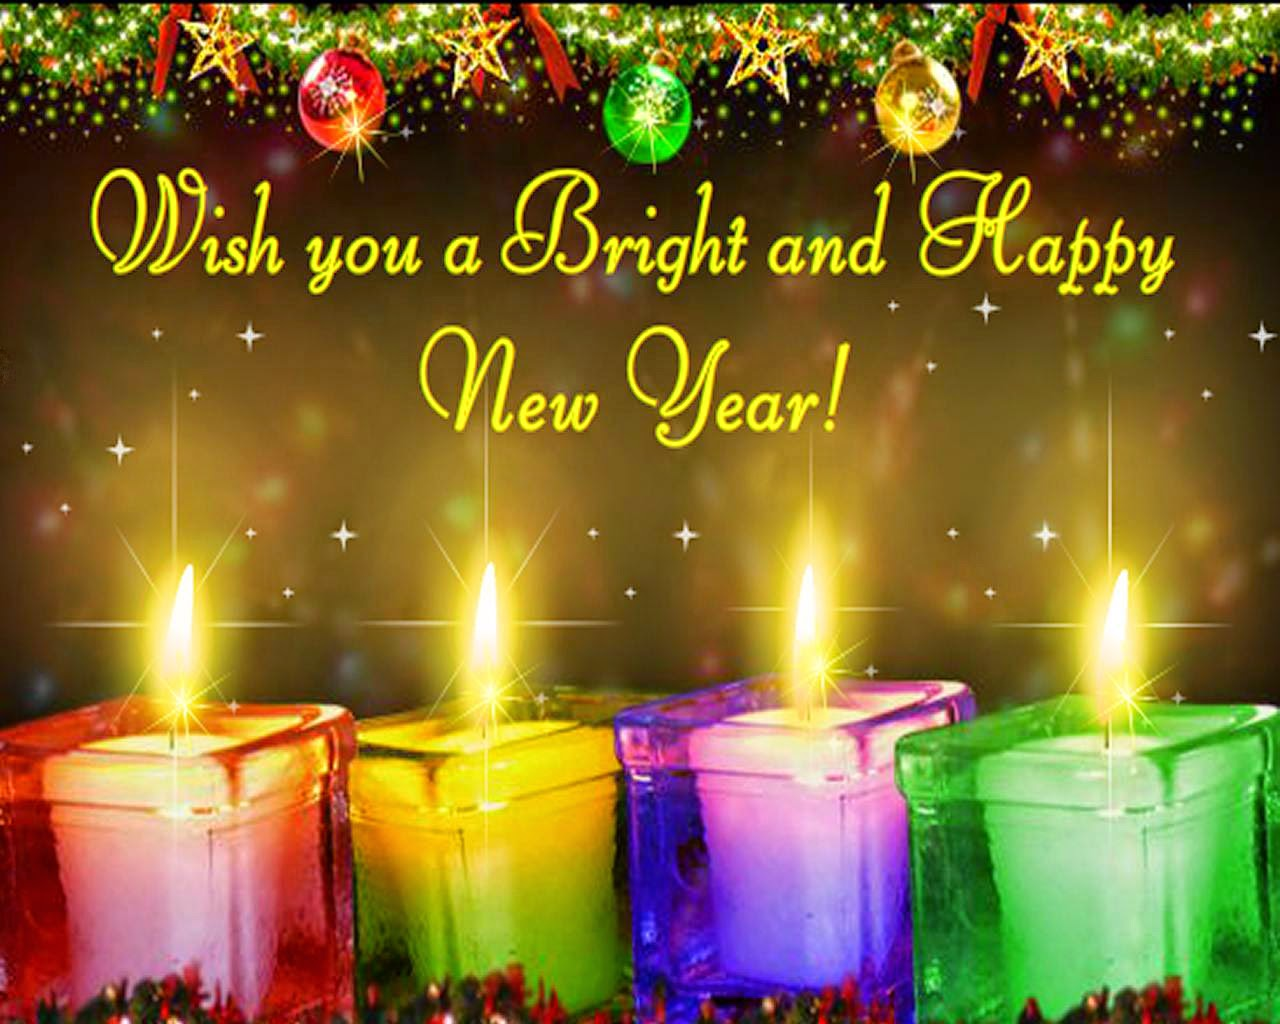 Happy New Year 2019 Wishes Picture For Friend